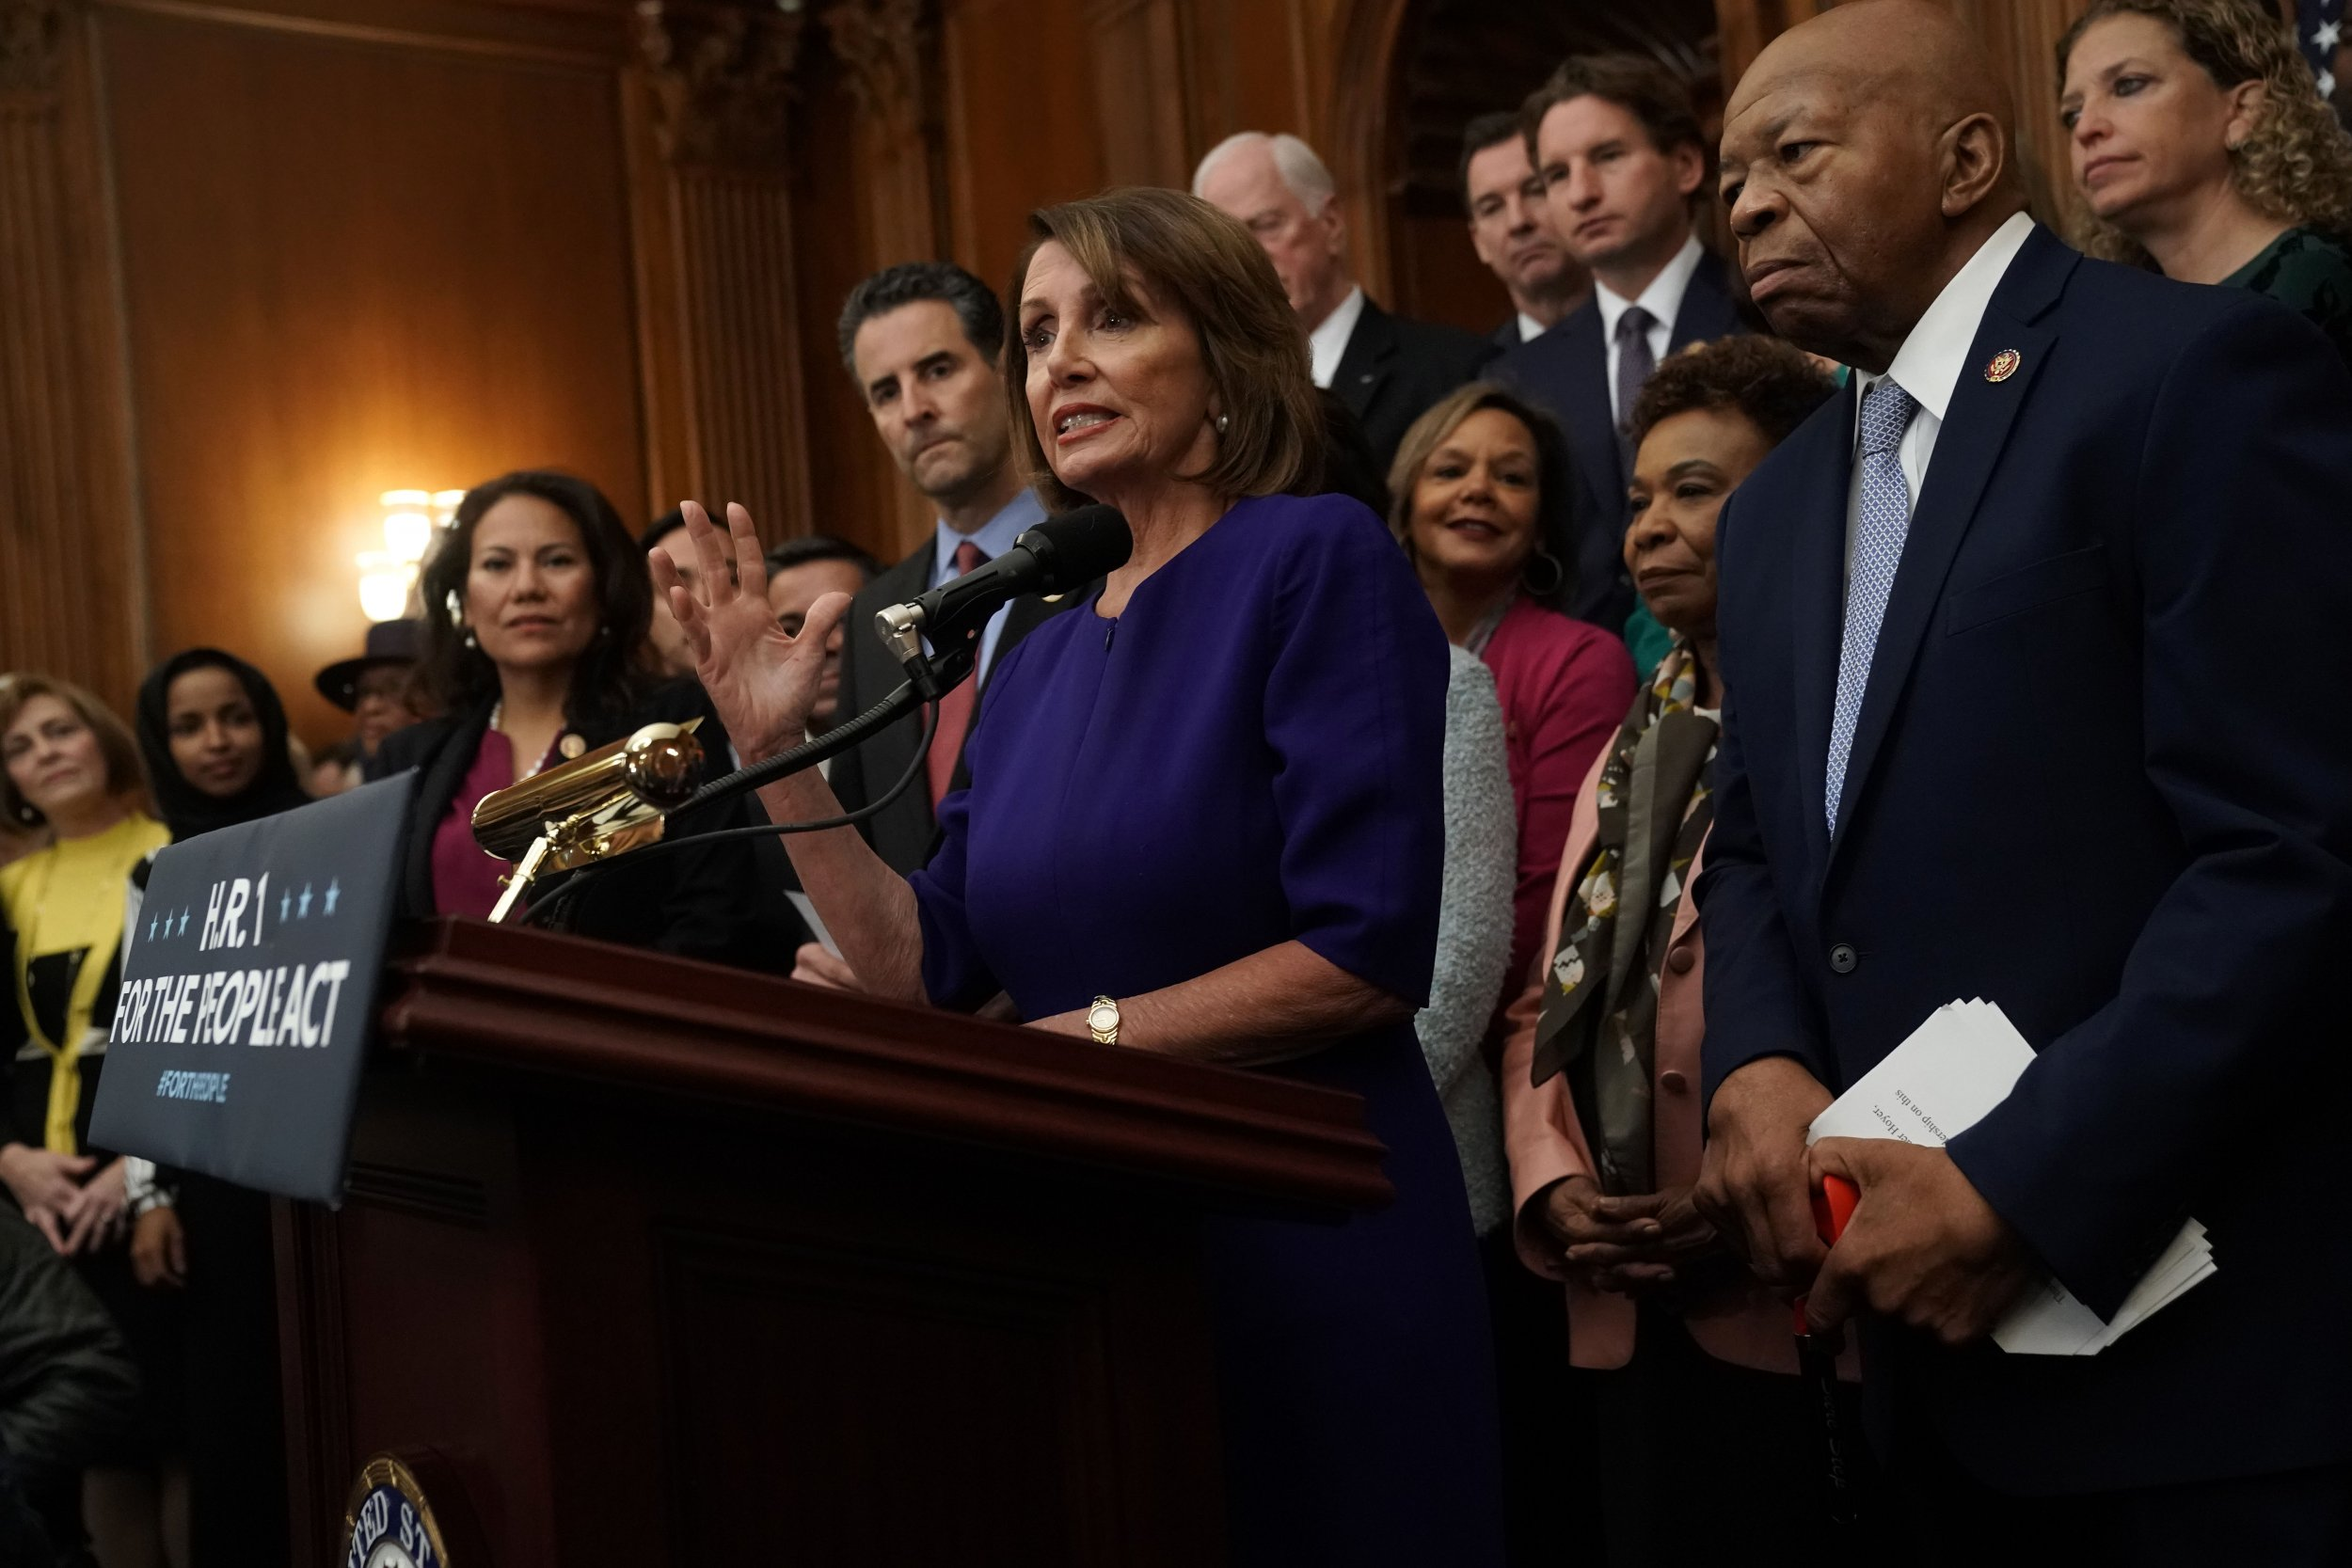 Nancy Pelosi, Democrats Balk at Condemning Rashida Talib's 'Impeach the MotherF—ker' Remarks